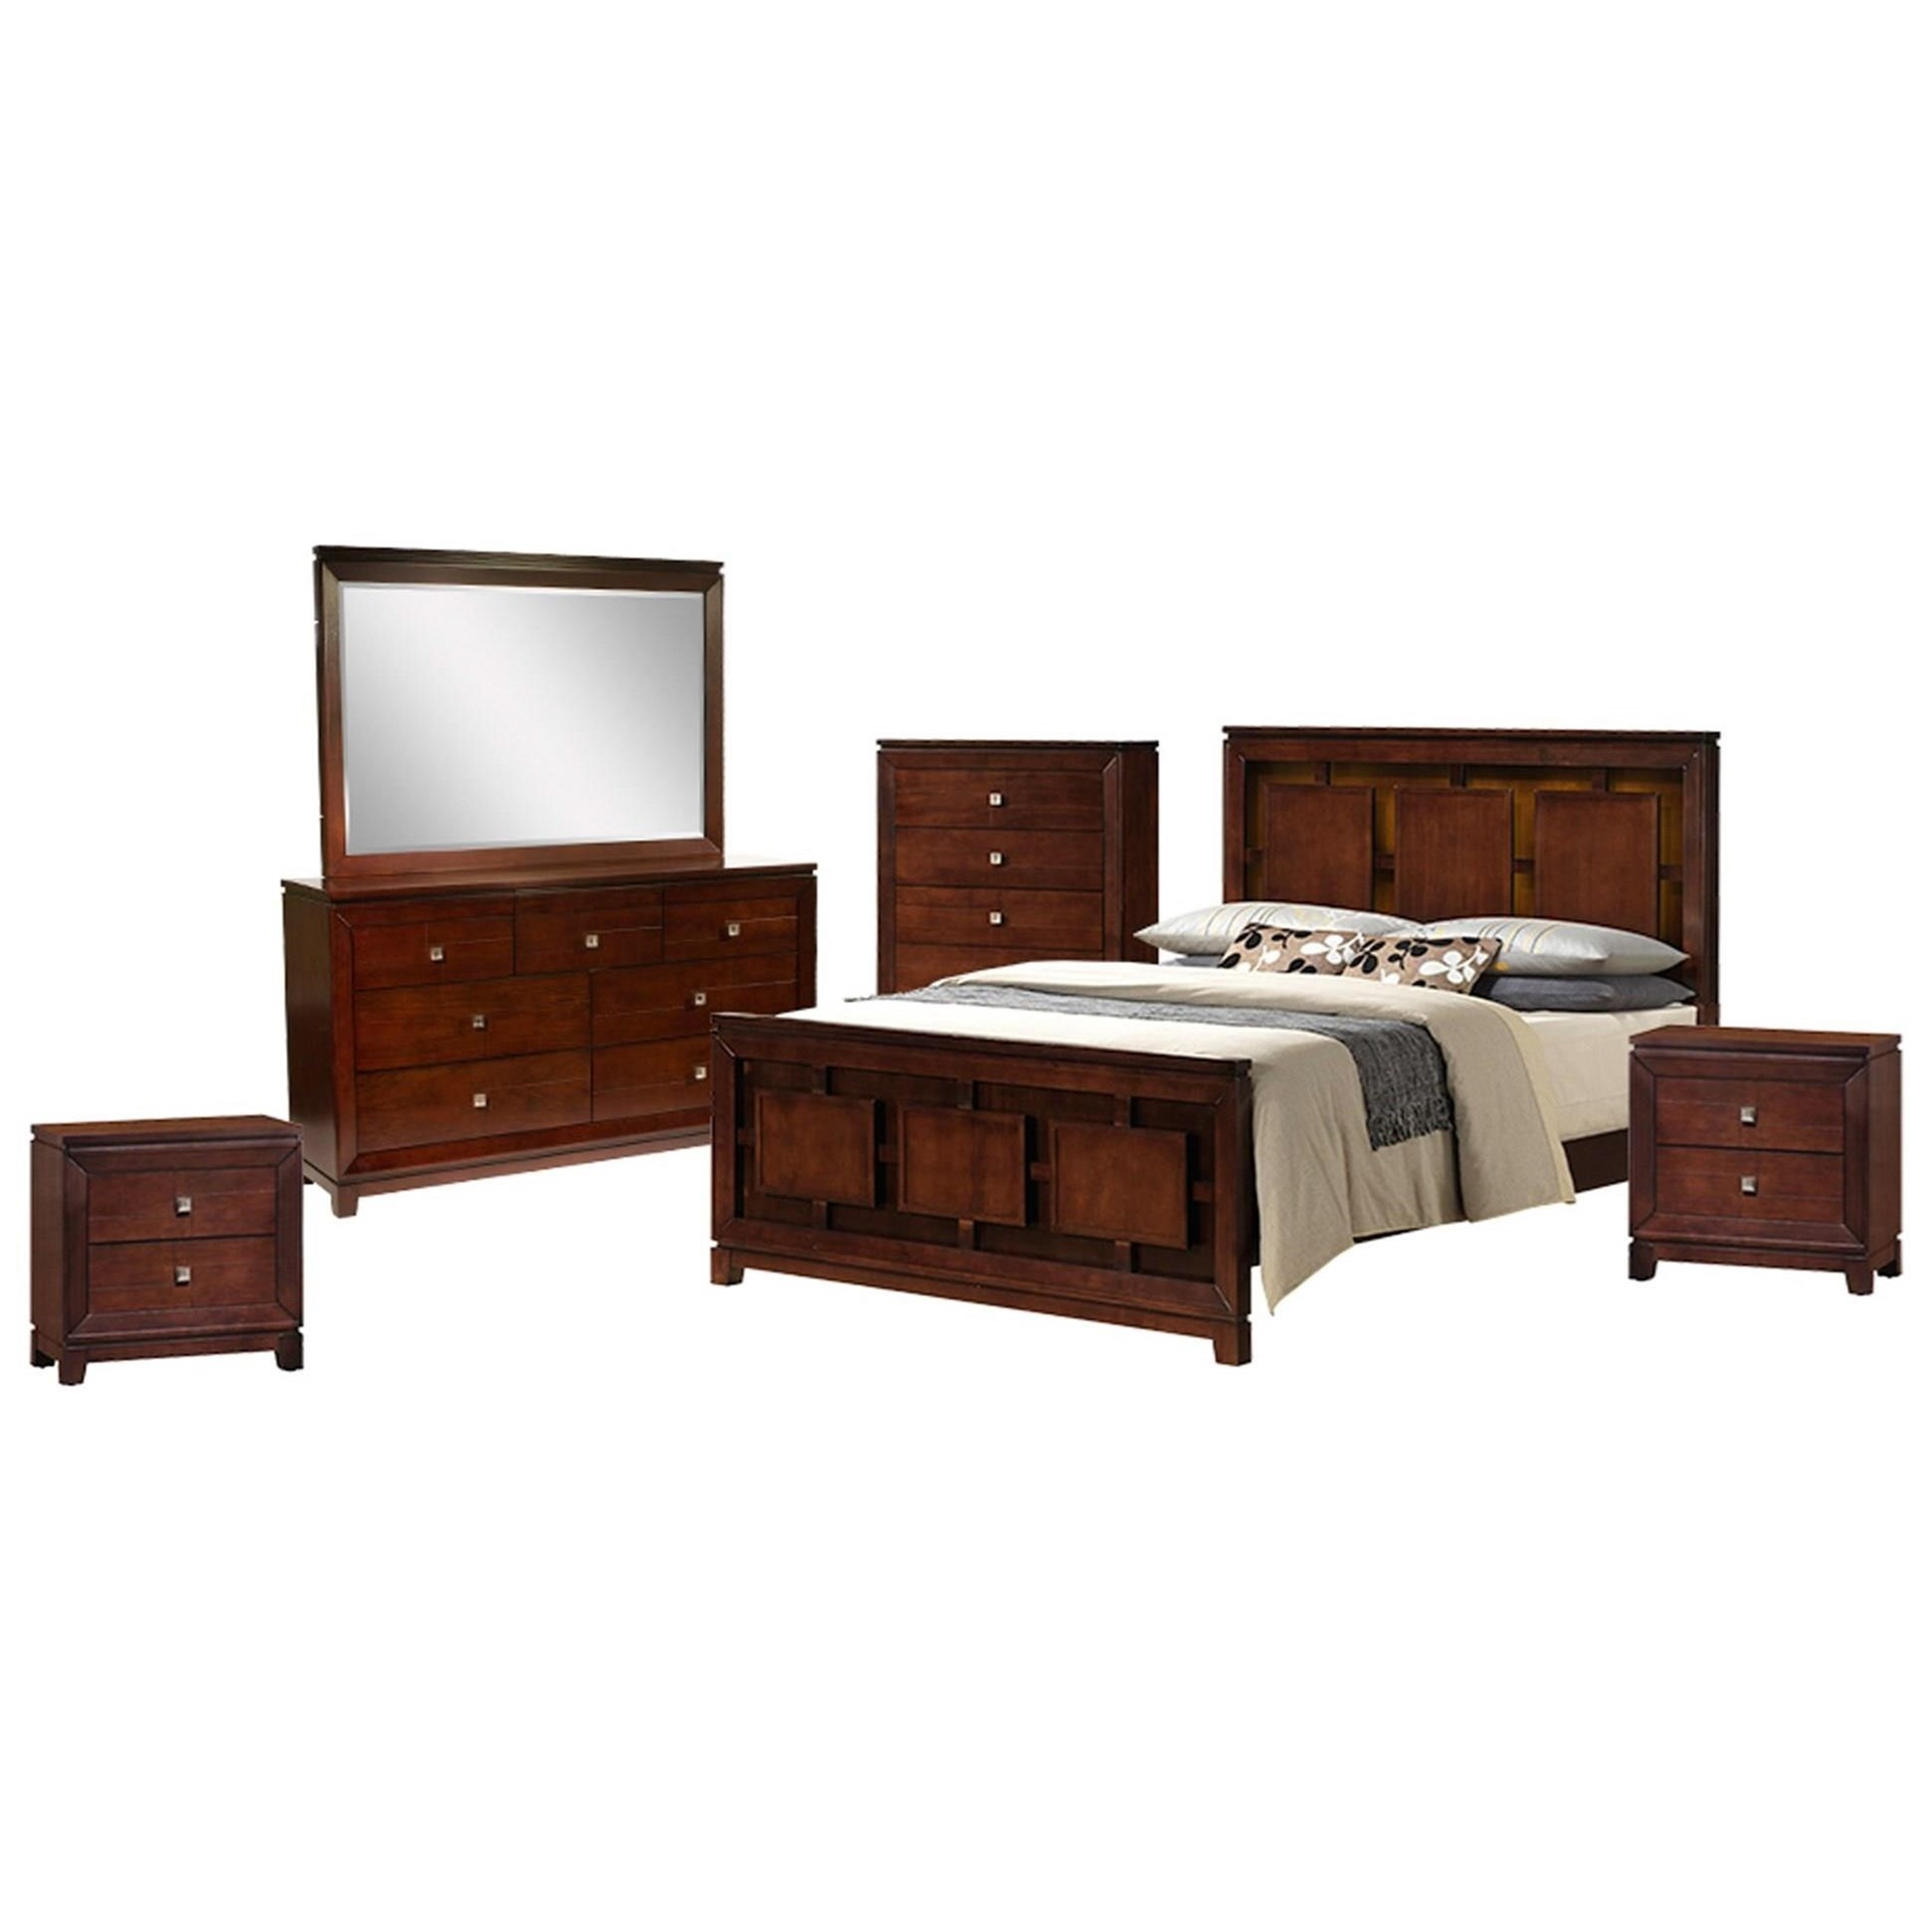 6-Piece King Bedroom Set